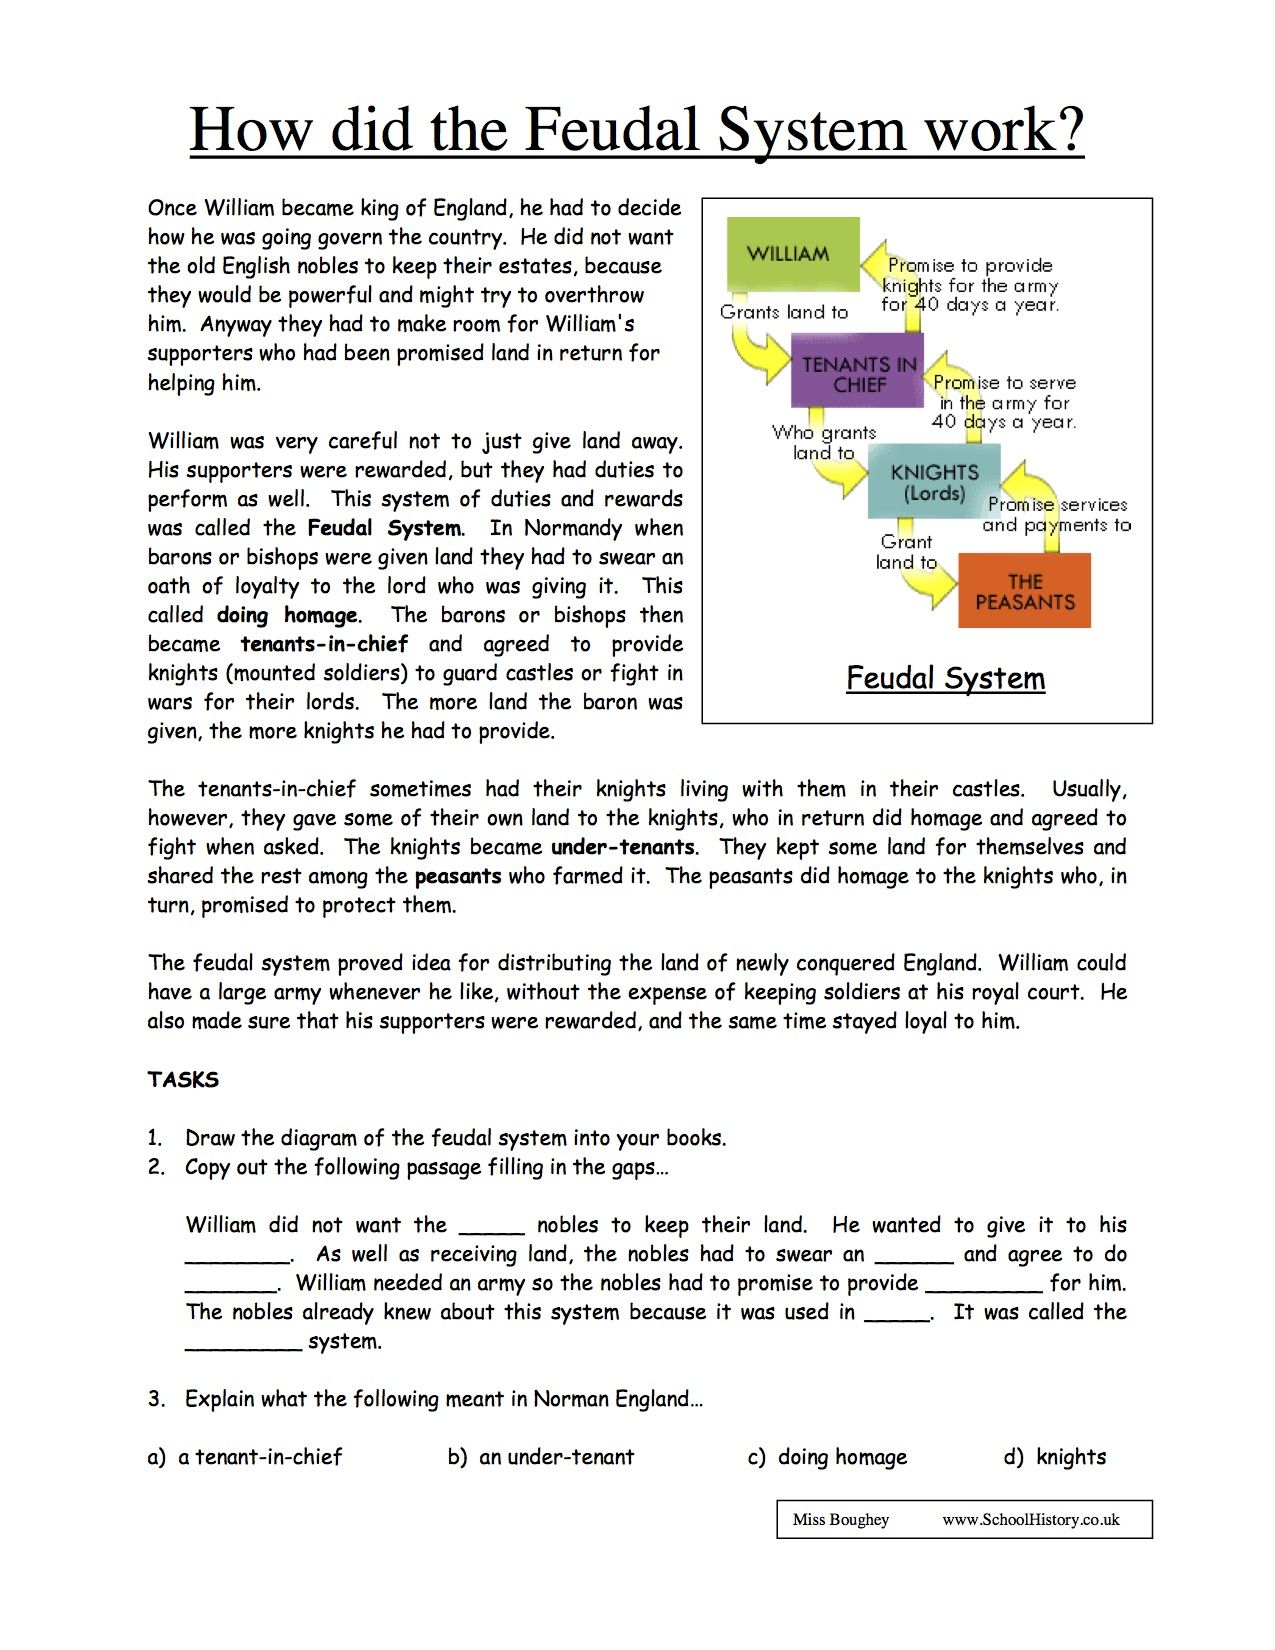 Free History Worksheets | Ks3 & Ks4 Lesson Plans & Resources | Geography Worksheets Ks3 Printable